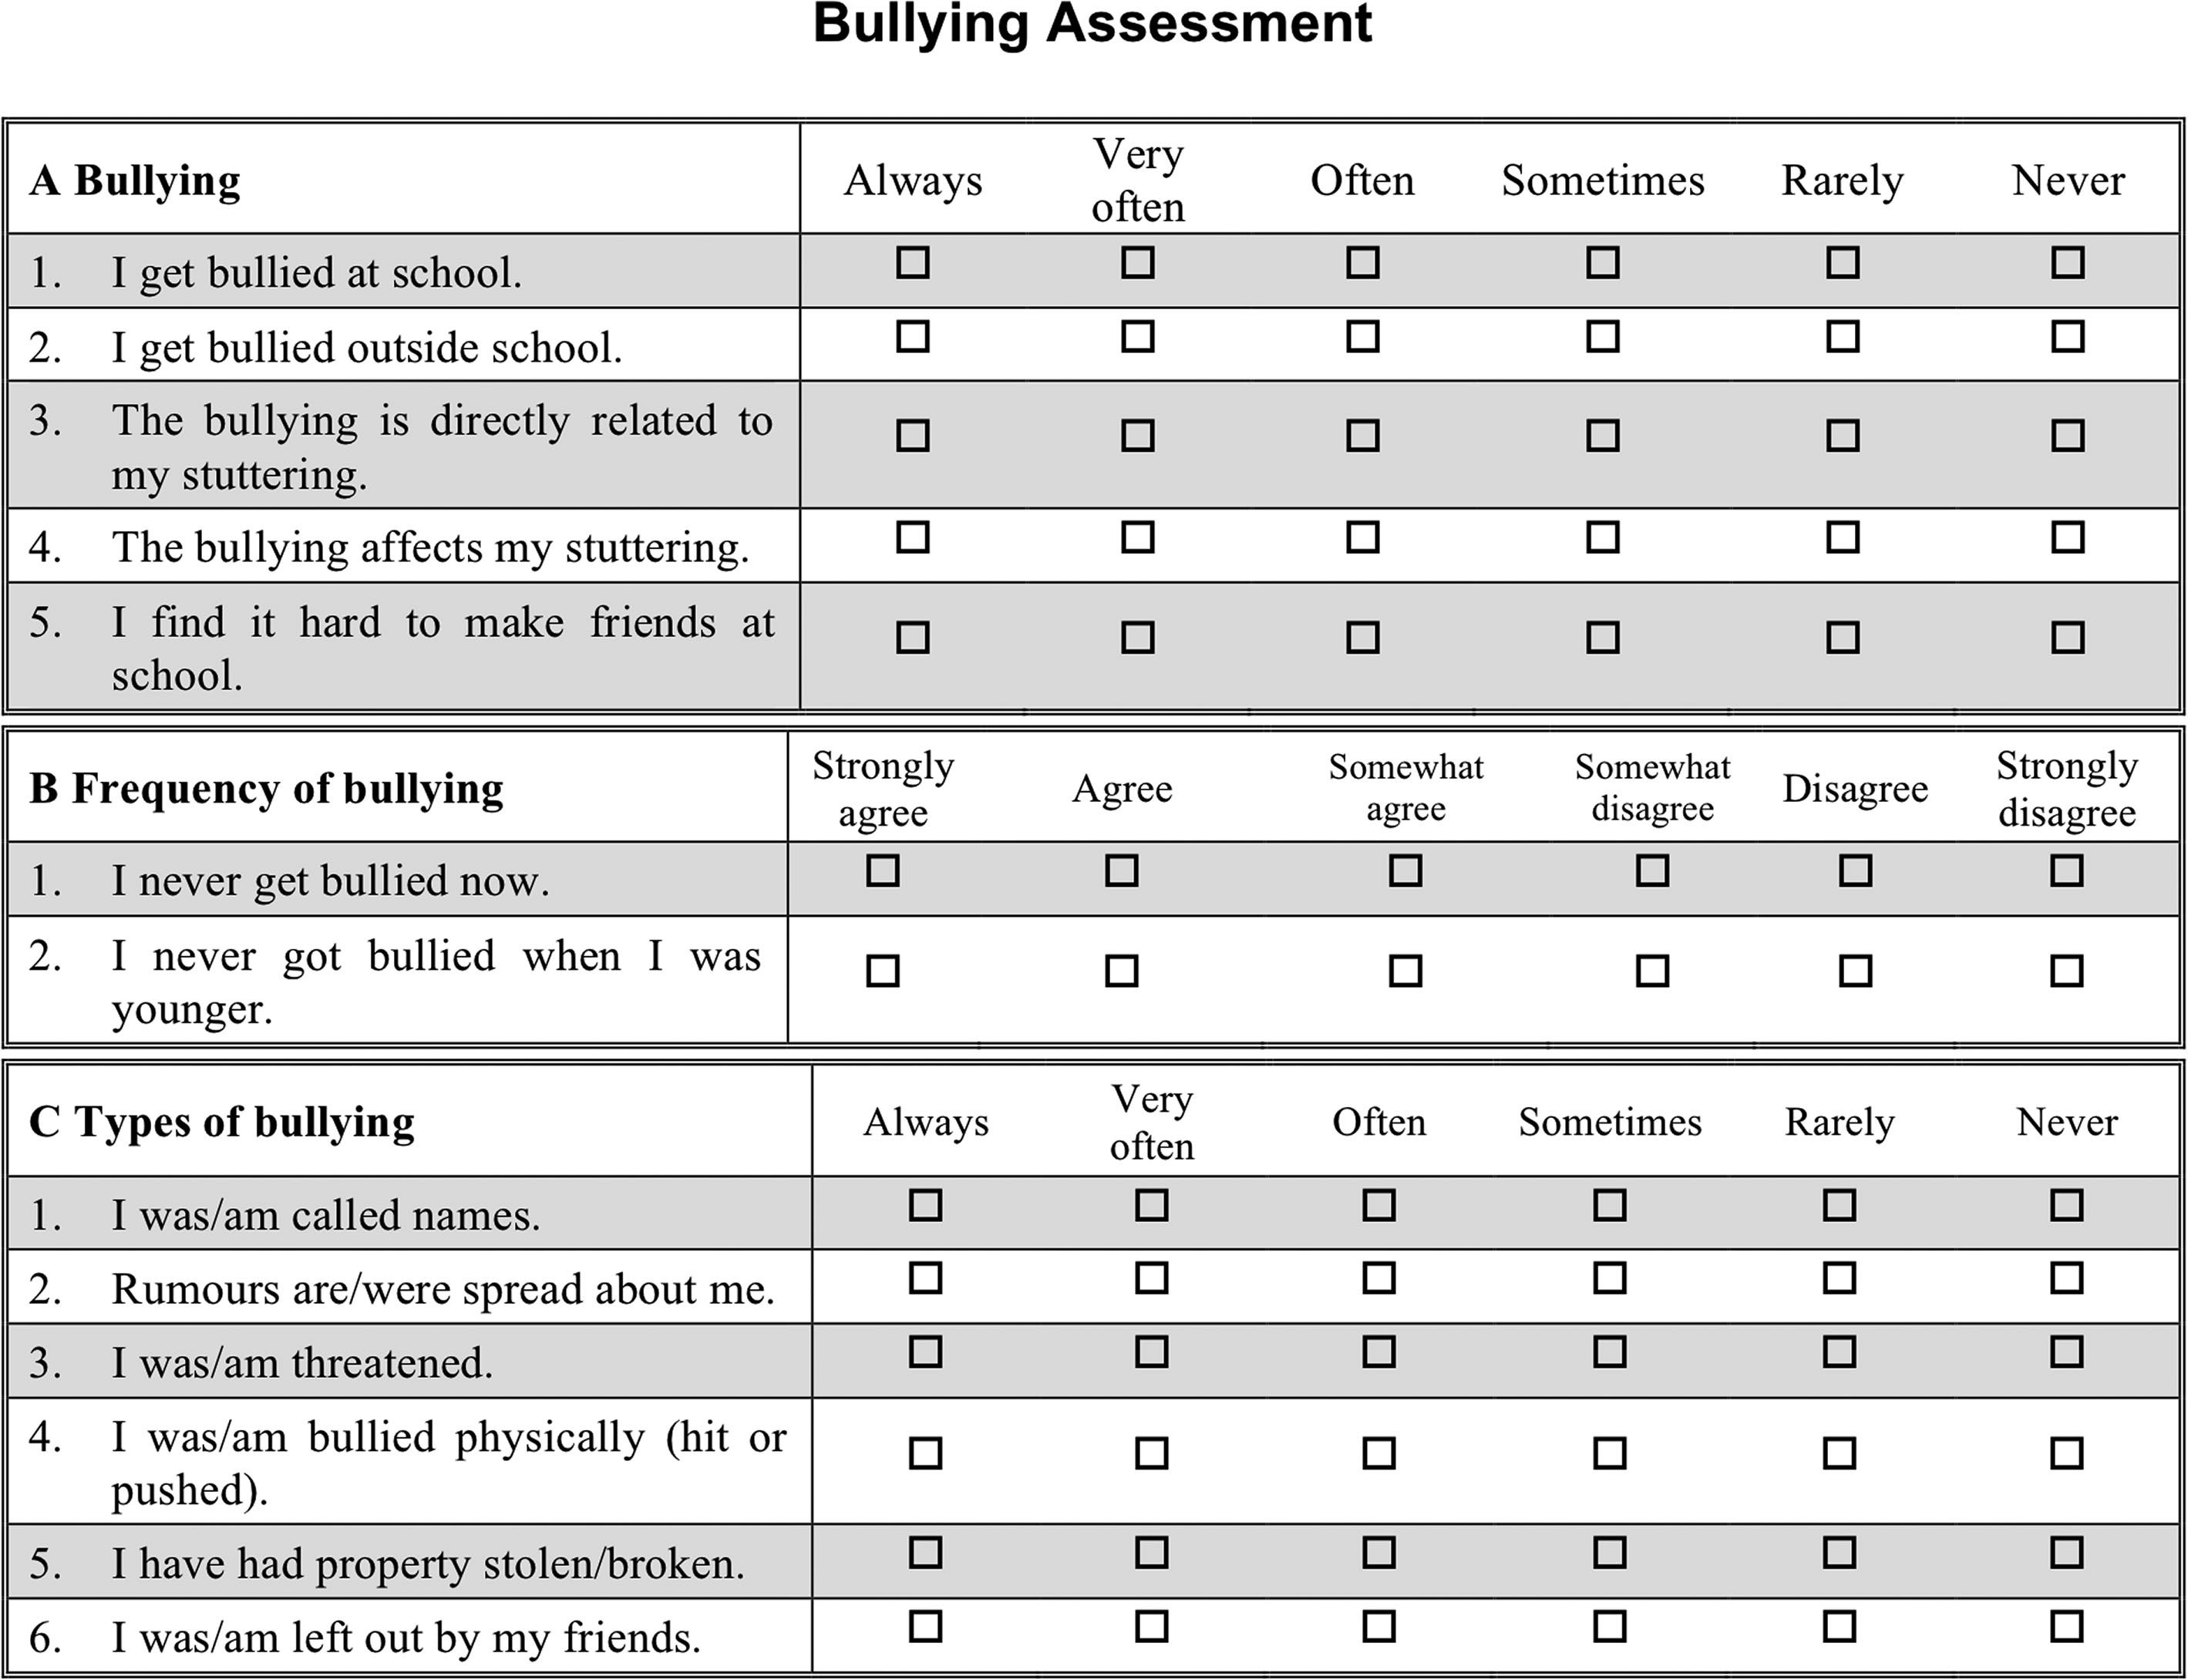 Bullying In Children And Teenagers Who Stutter And The Relation To